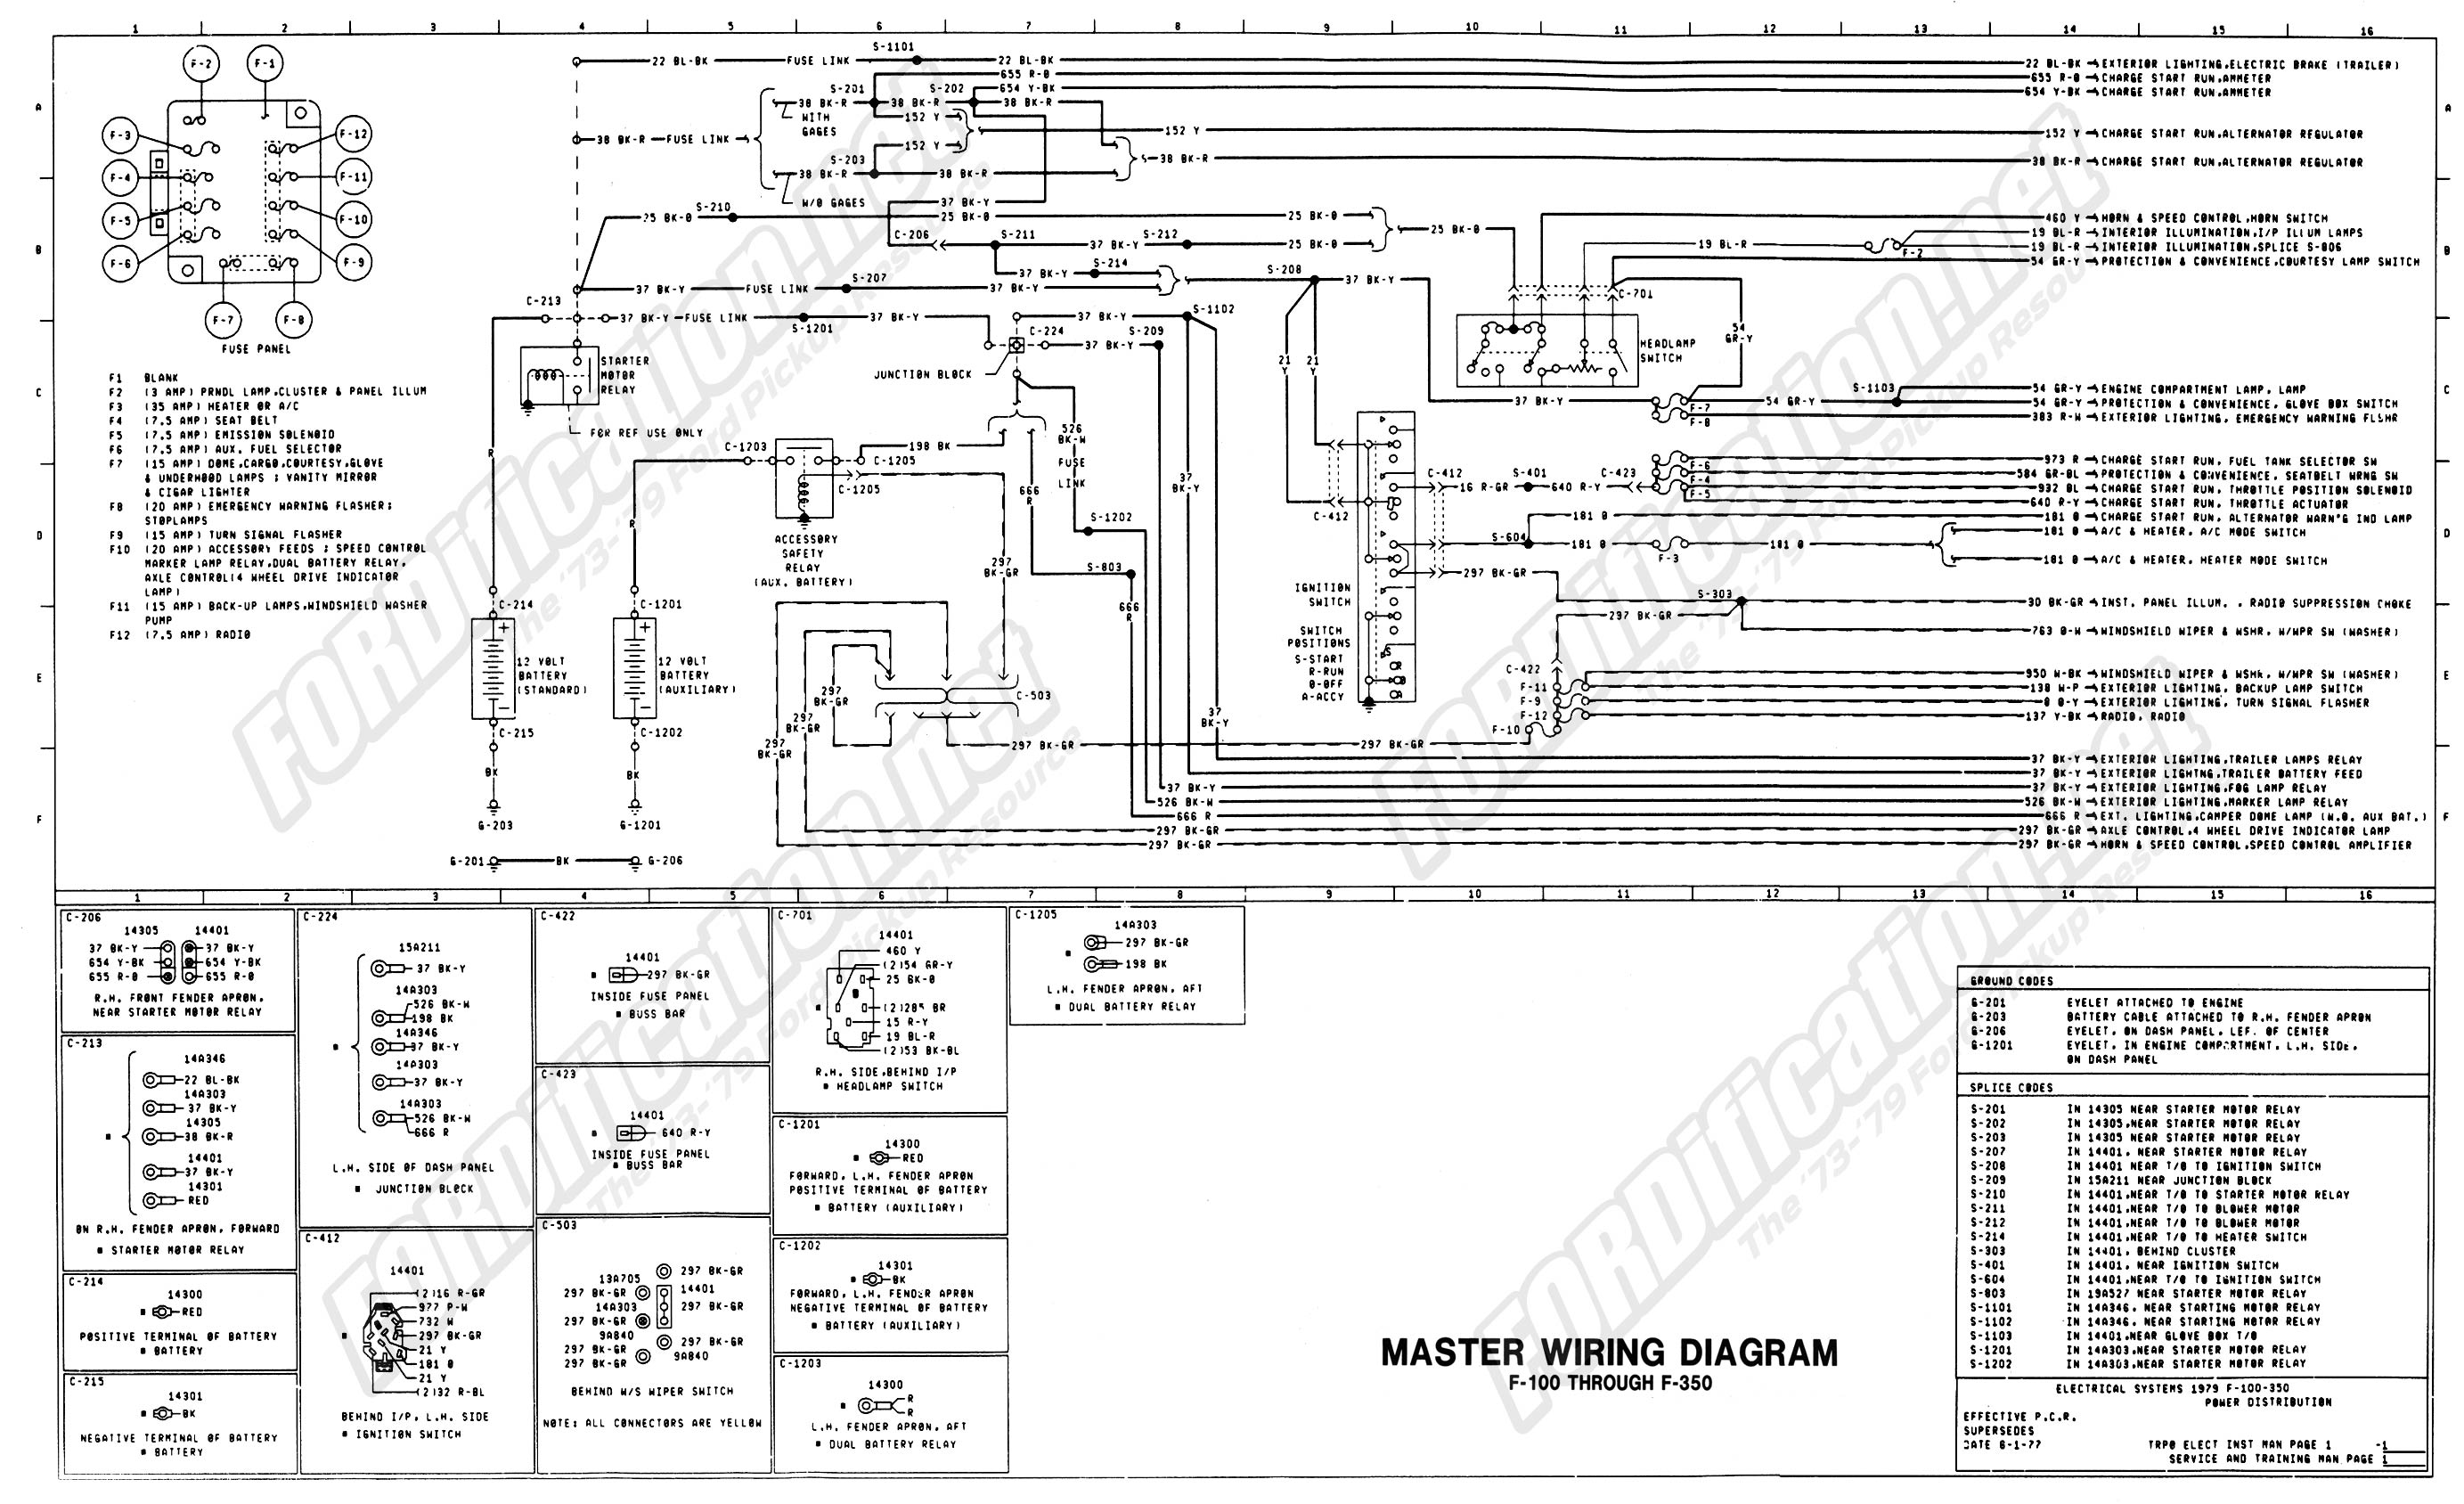 wiring_79master_1of9 76 ford truck steering column wiring diagram wiring diagrams